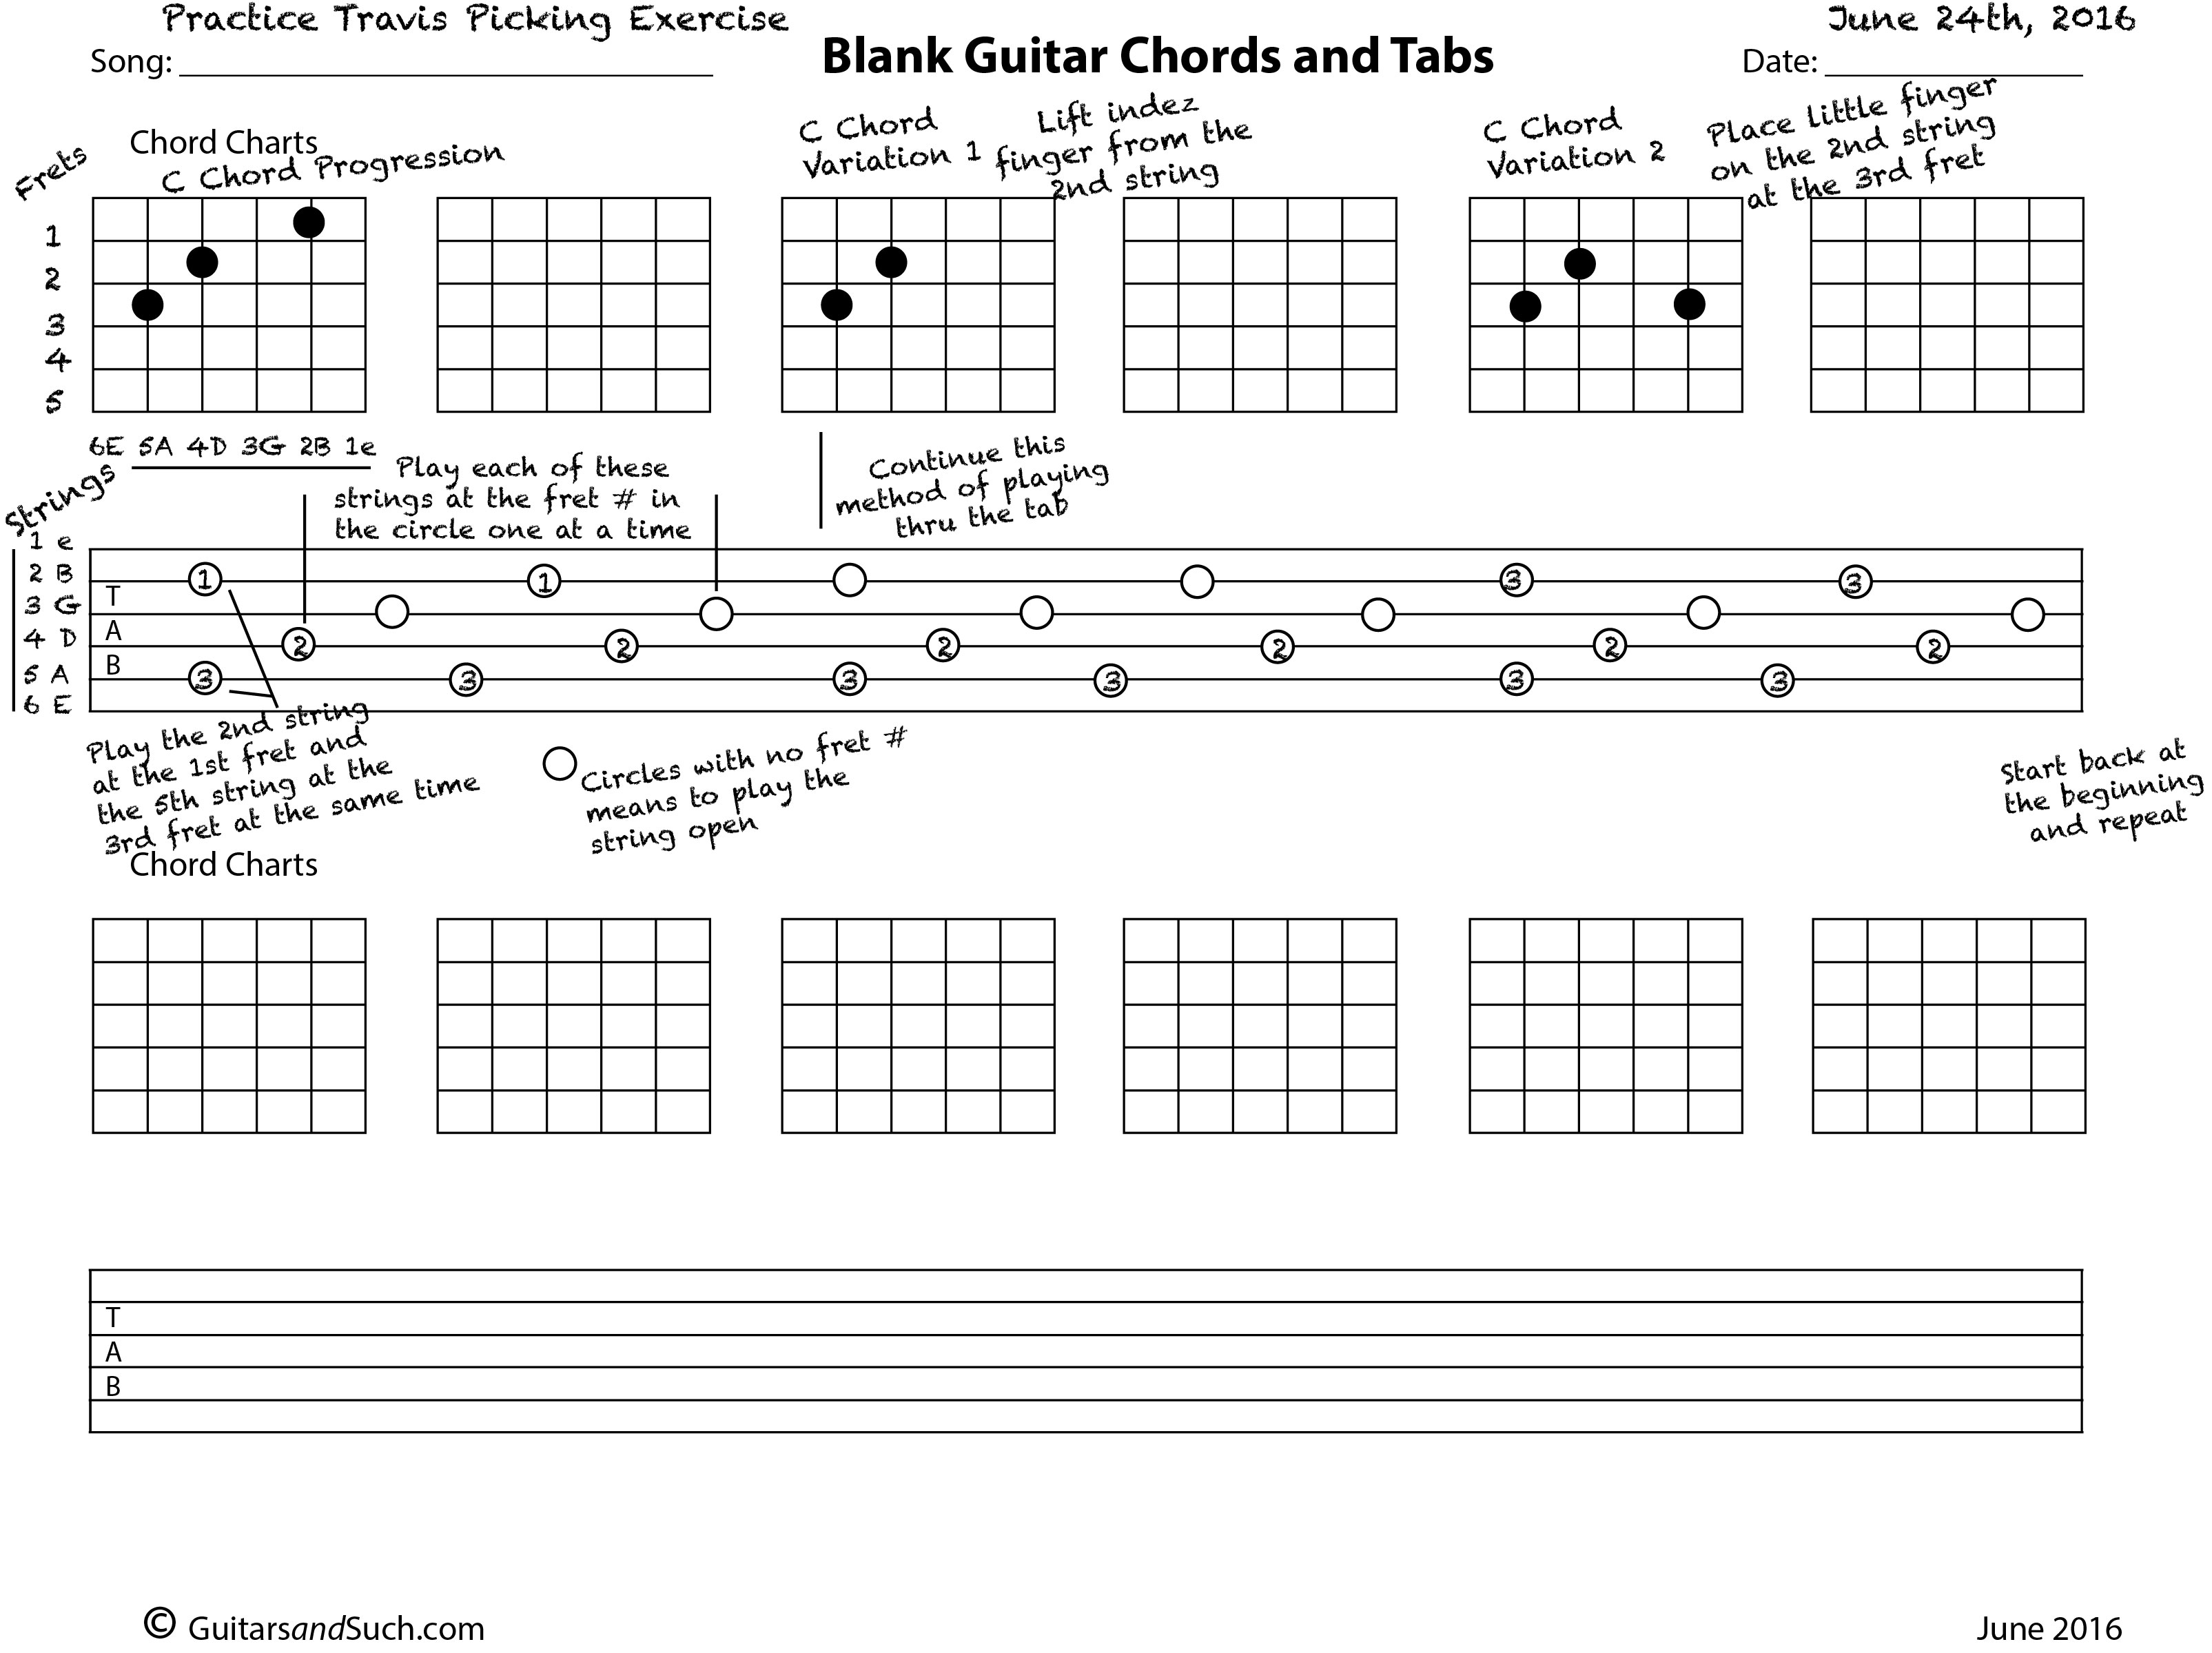 How To Use The Blank Guitar Chords And Tabs